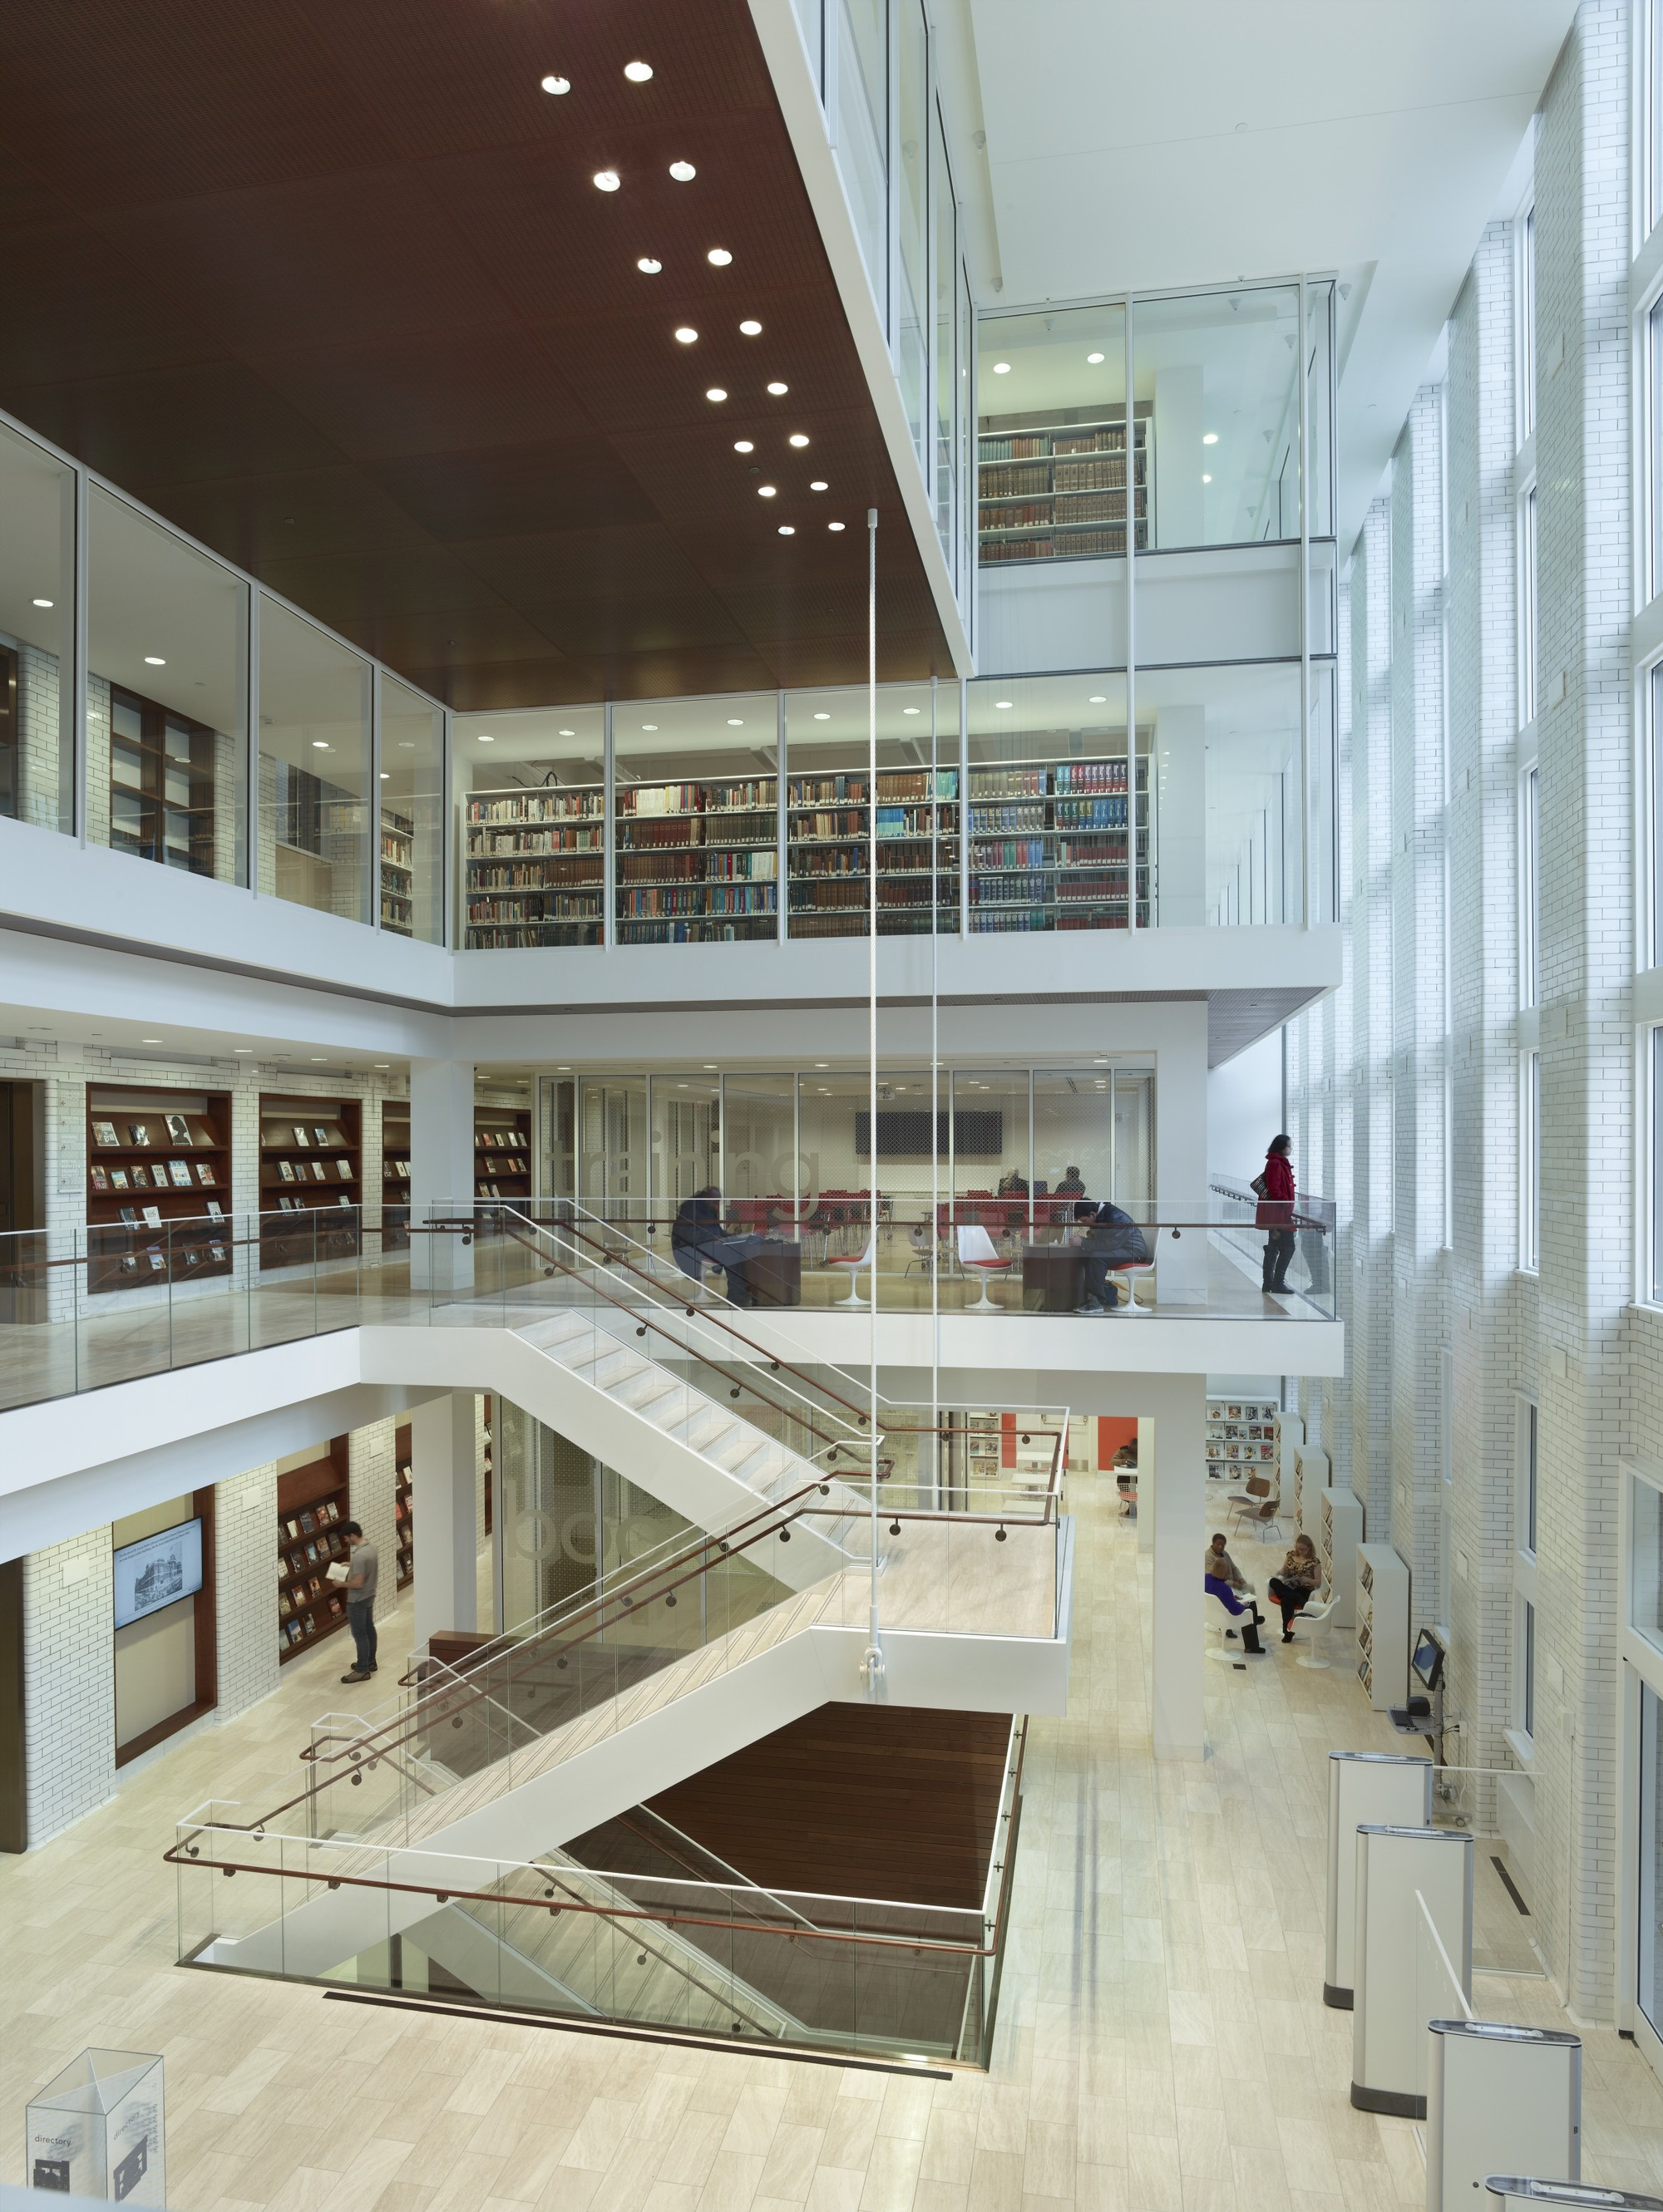 St louis public library cannon design archdaily for Biblioteca arquitectura